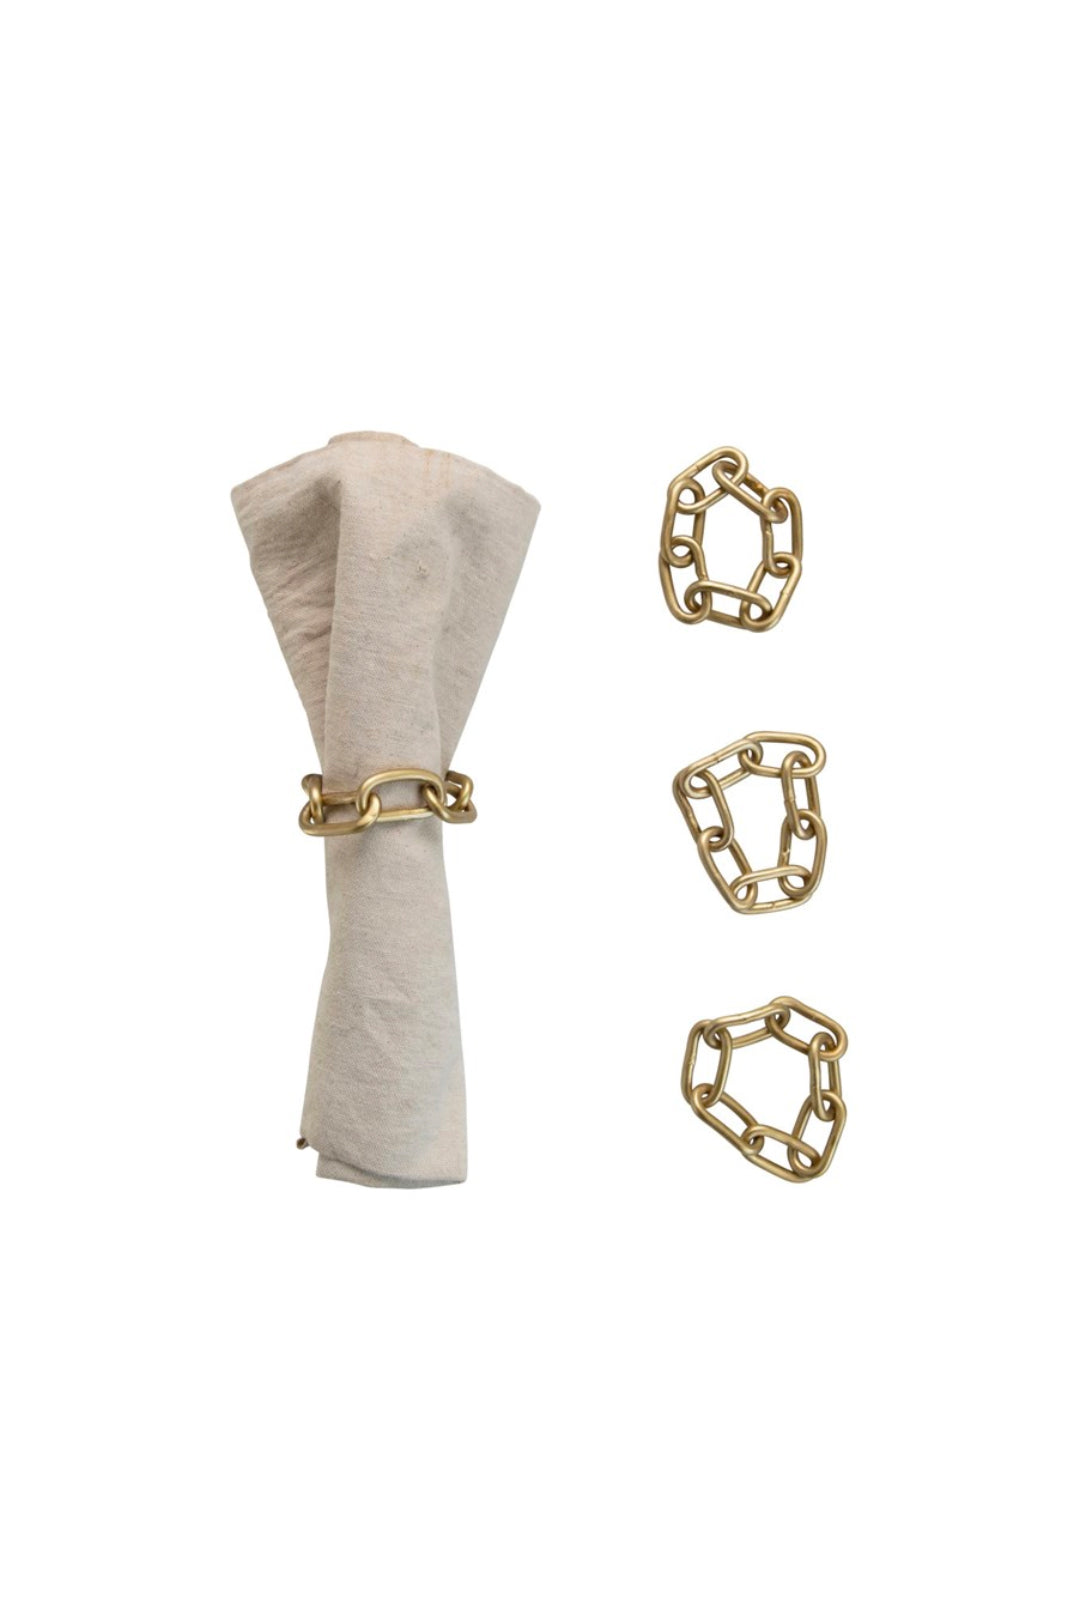 Metal Chain Napkin Rings w/Brass Finish, Set of 4